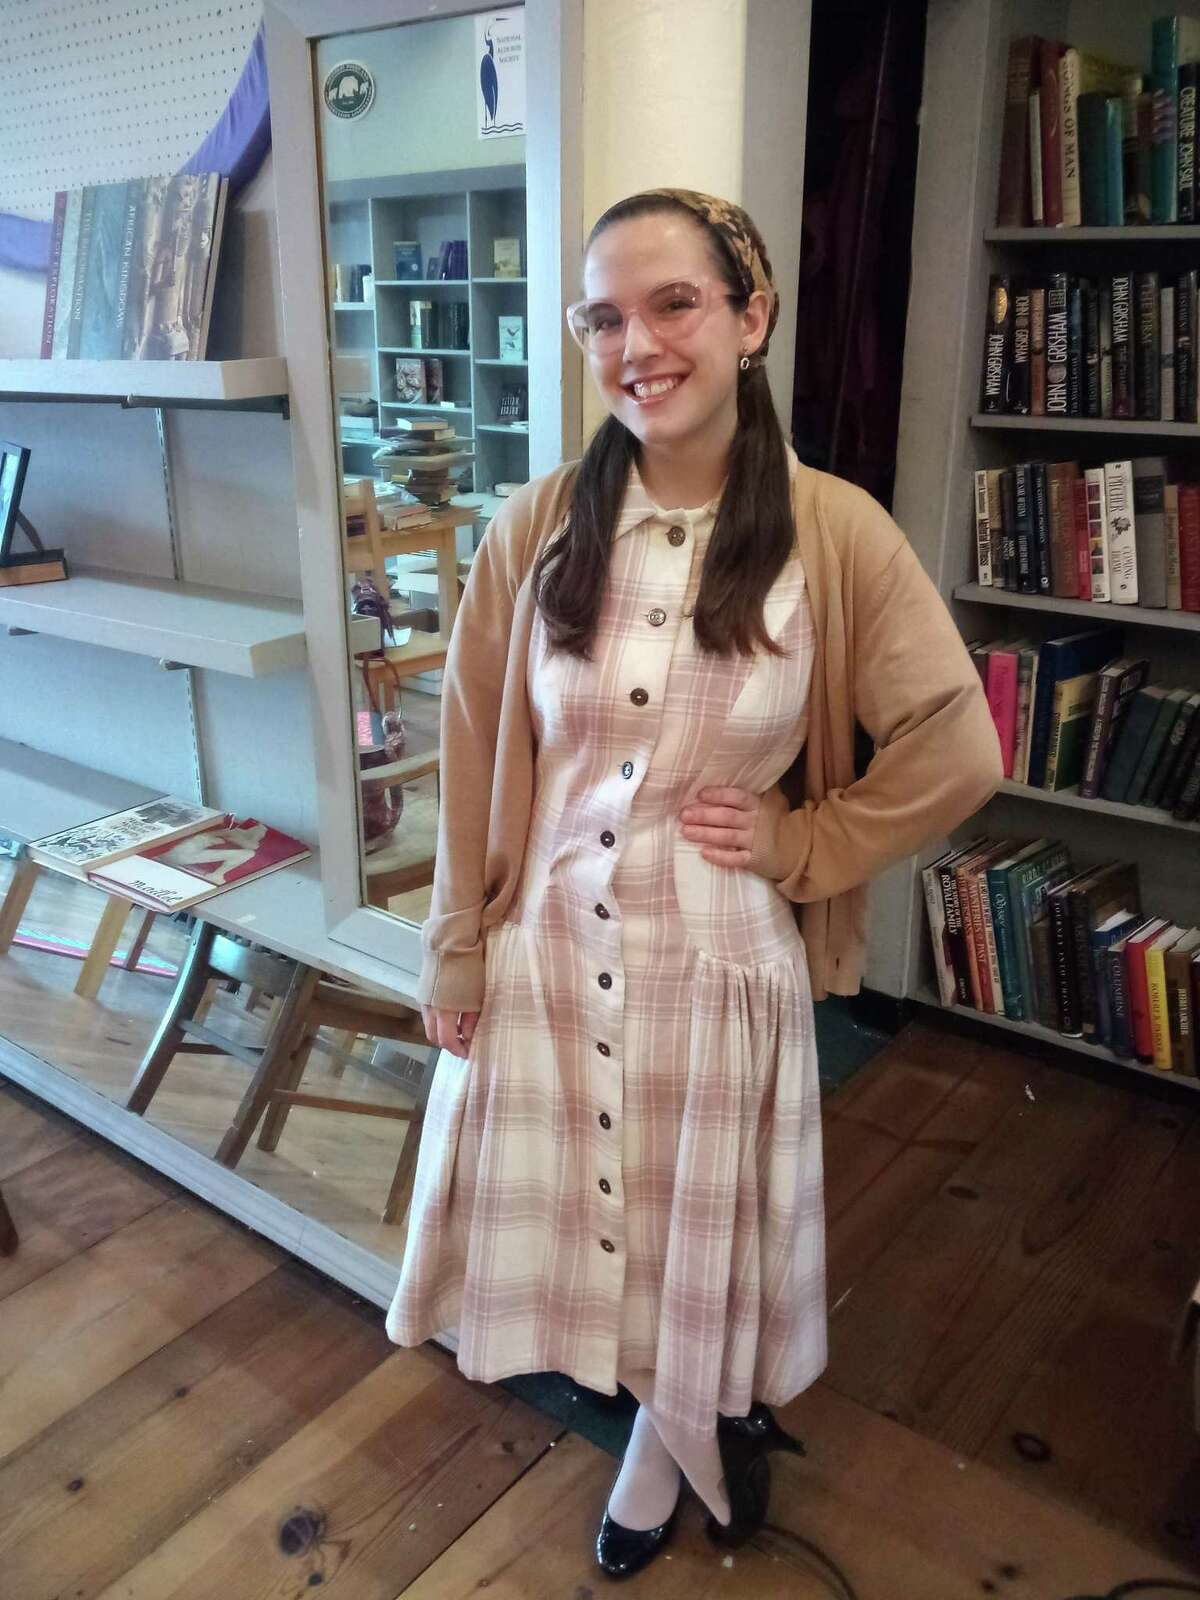 Emily Delventhal-Sali, a seamstress and Torrington resident, is running her new business out of the Howard building on Main Street, Torrington.